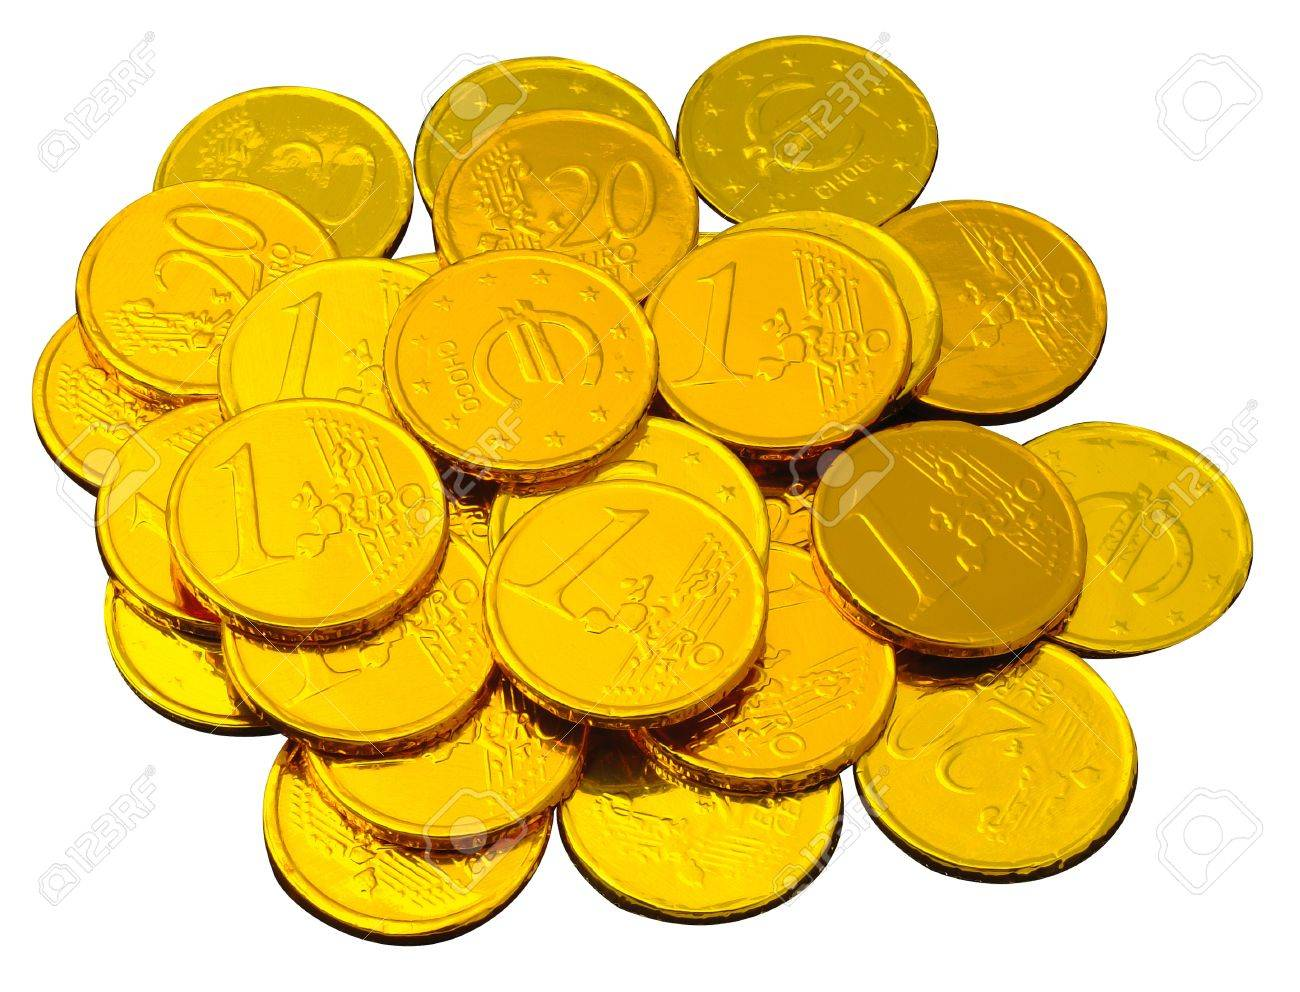 Chocolate Coins Wrapped In Shiny Golden Tinfoil Stock Photo ...